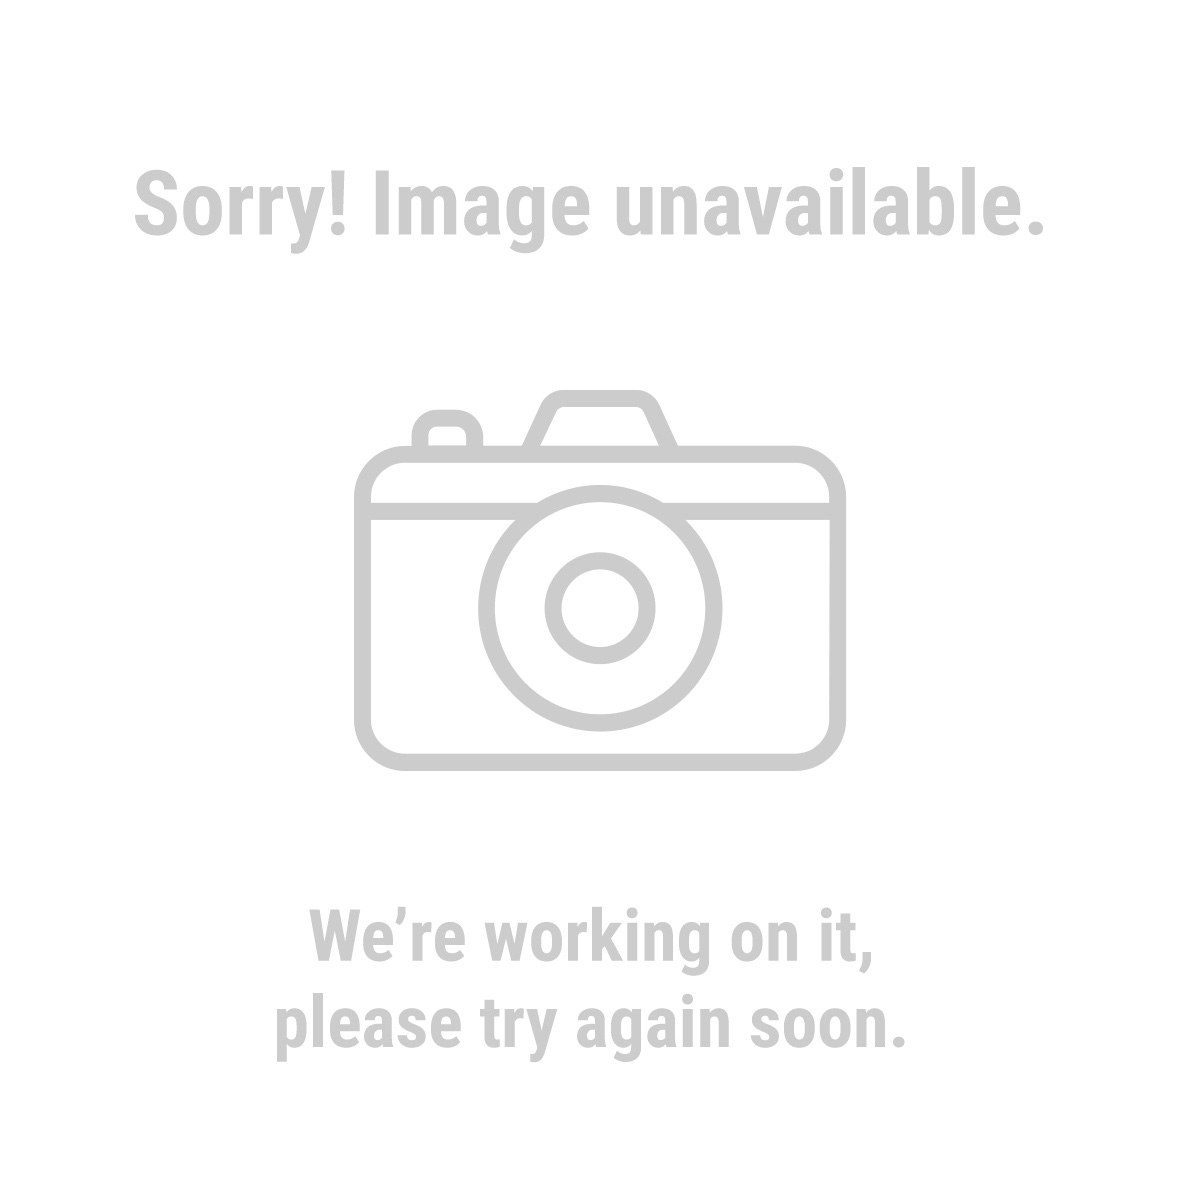 HFT® 69119 11 ft. 4 in. x 17 ft. 6 in. Blue All Purpose/Weather Resistant Tarp